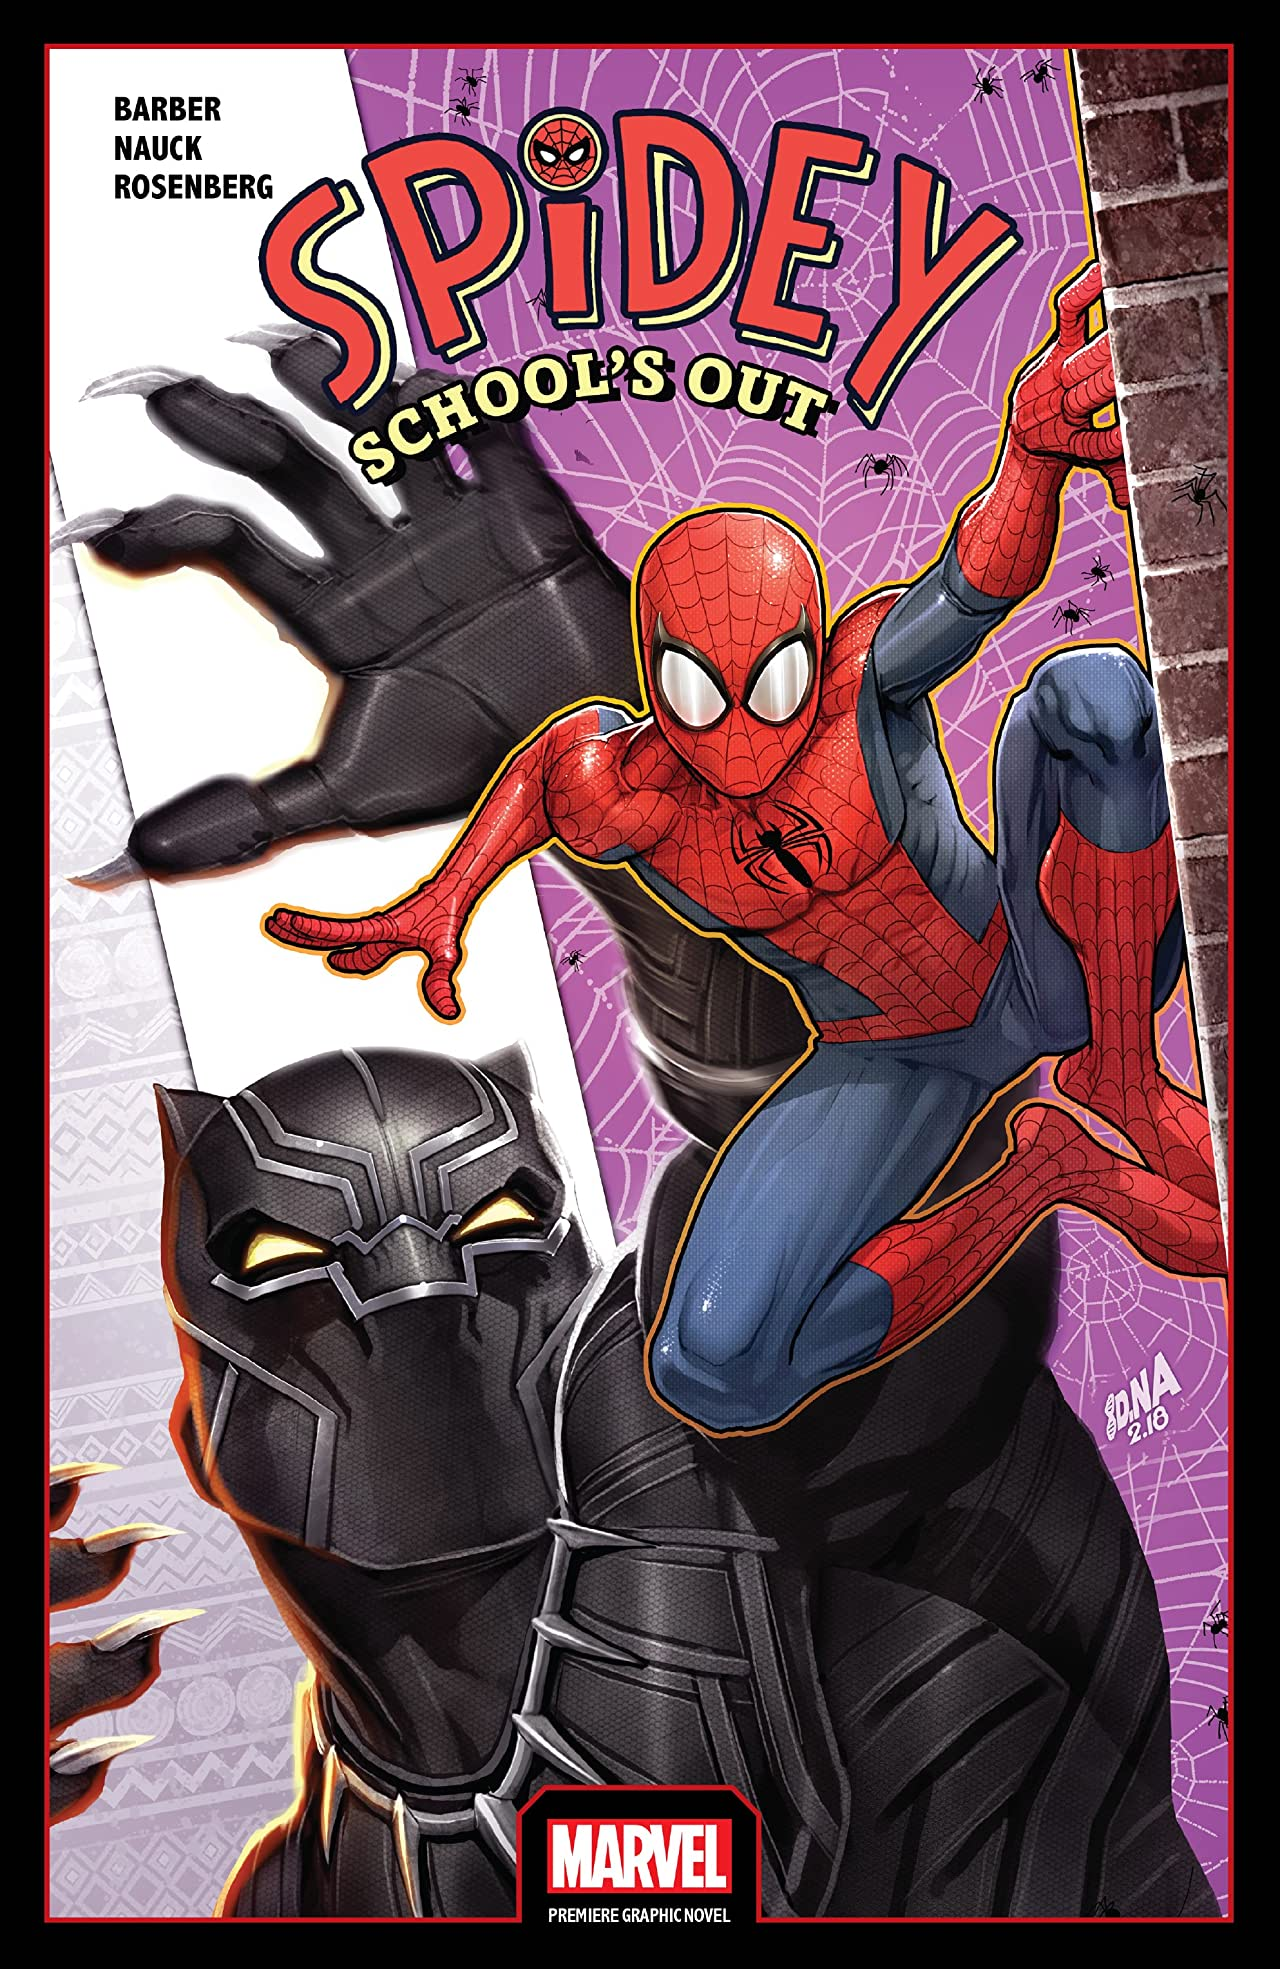 Spidey: School's Out